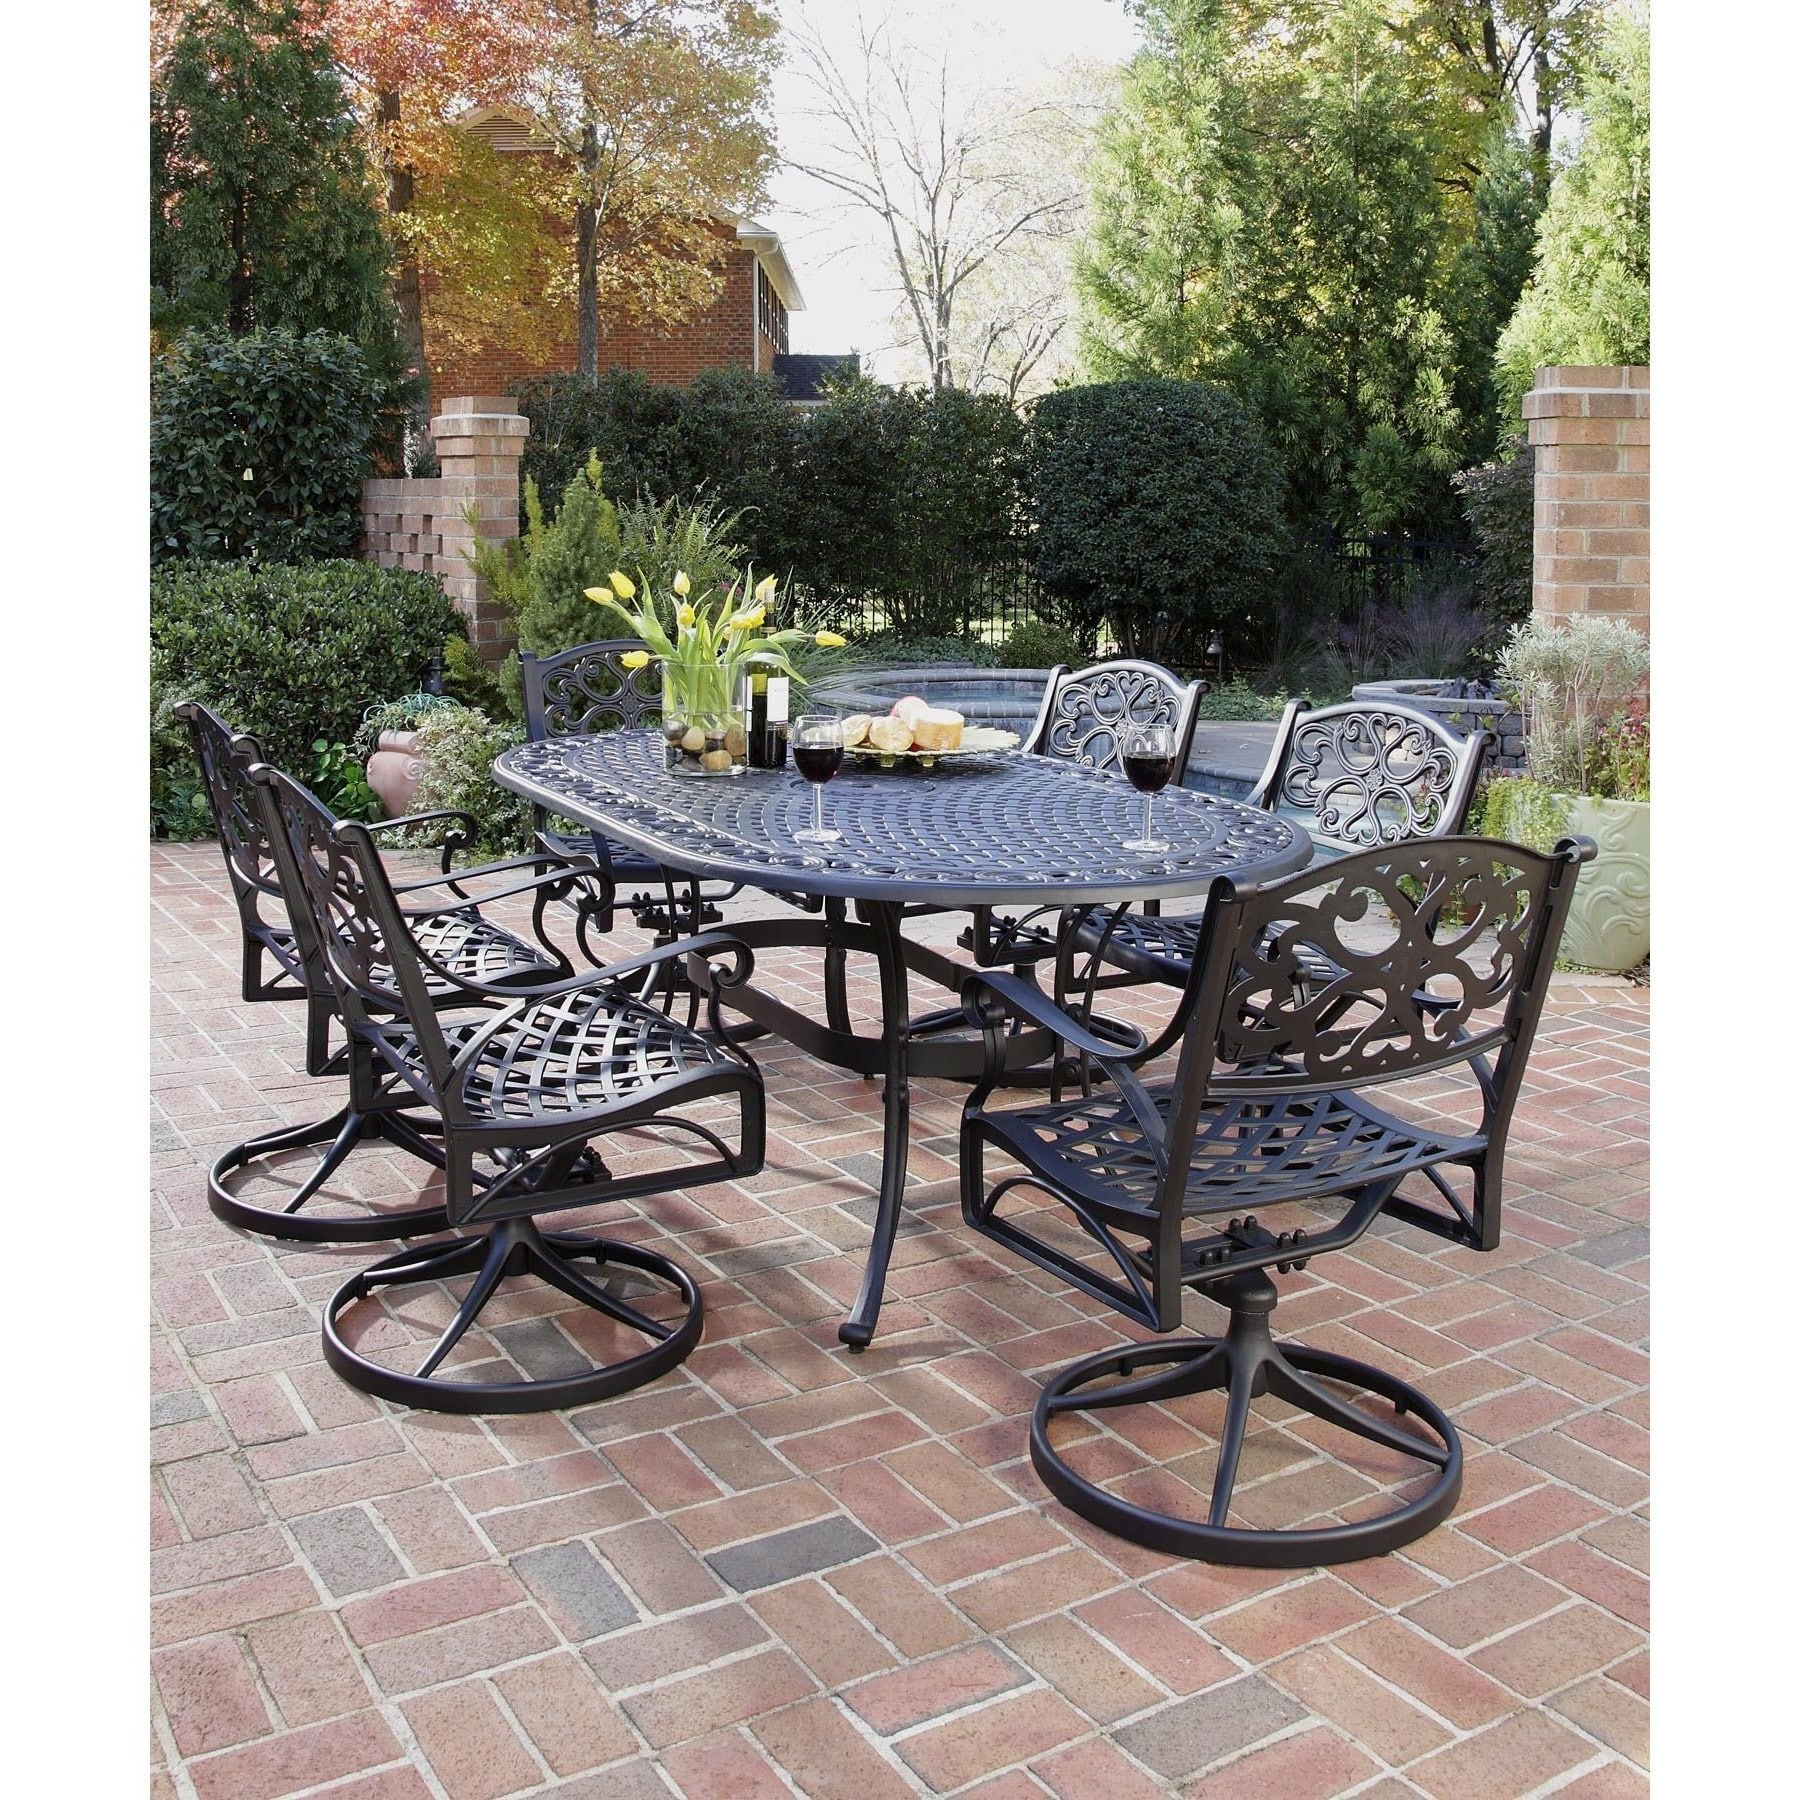 Widely Used Havenside Home Fenwick Chaise Lounge Chairs Inside Gracewood Hollow Rasmussen 7 Piece Dining Set 72 Oval Table (View 9 of 25)